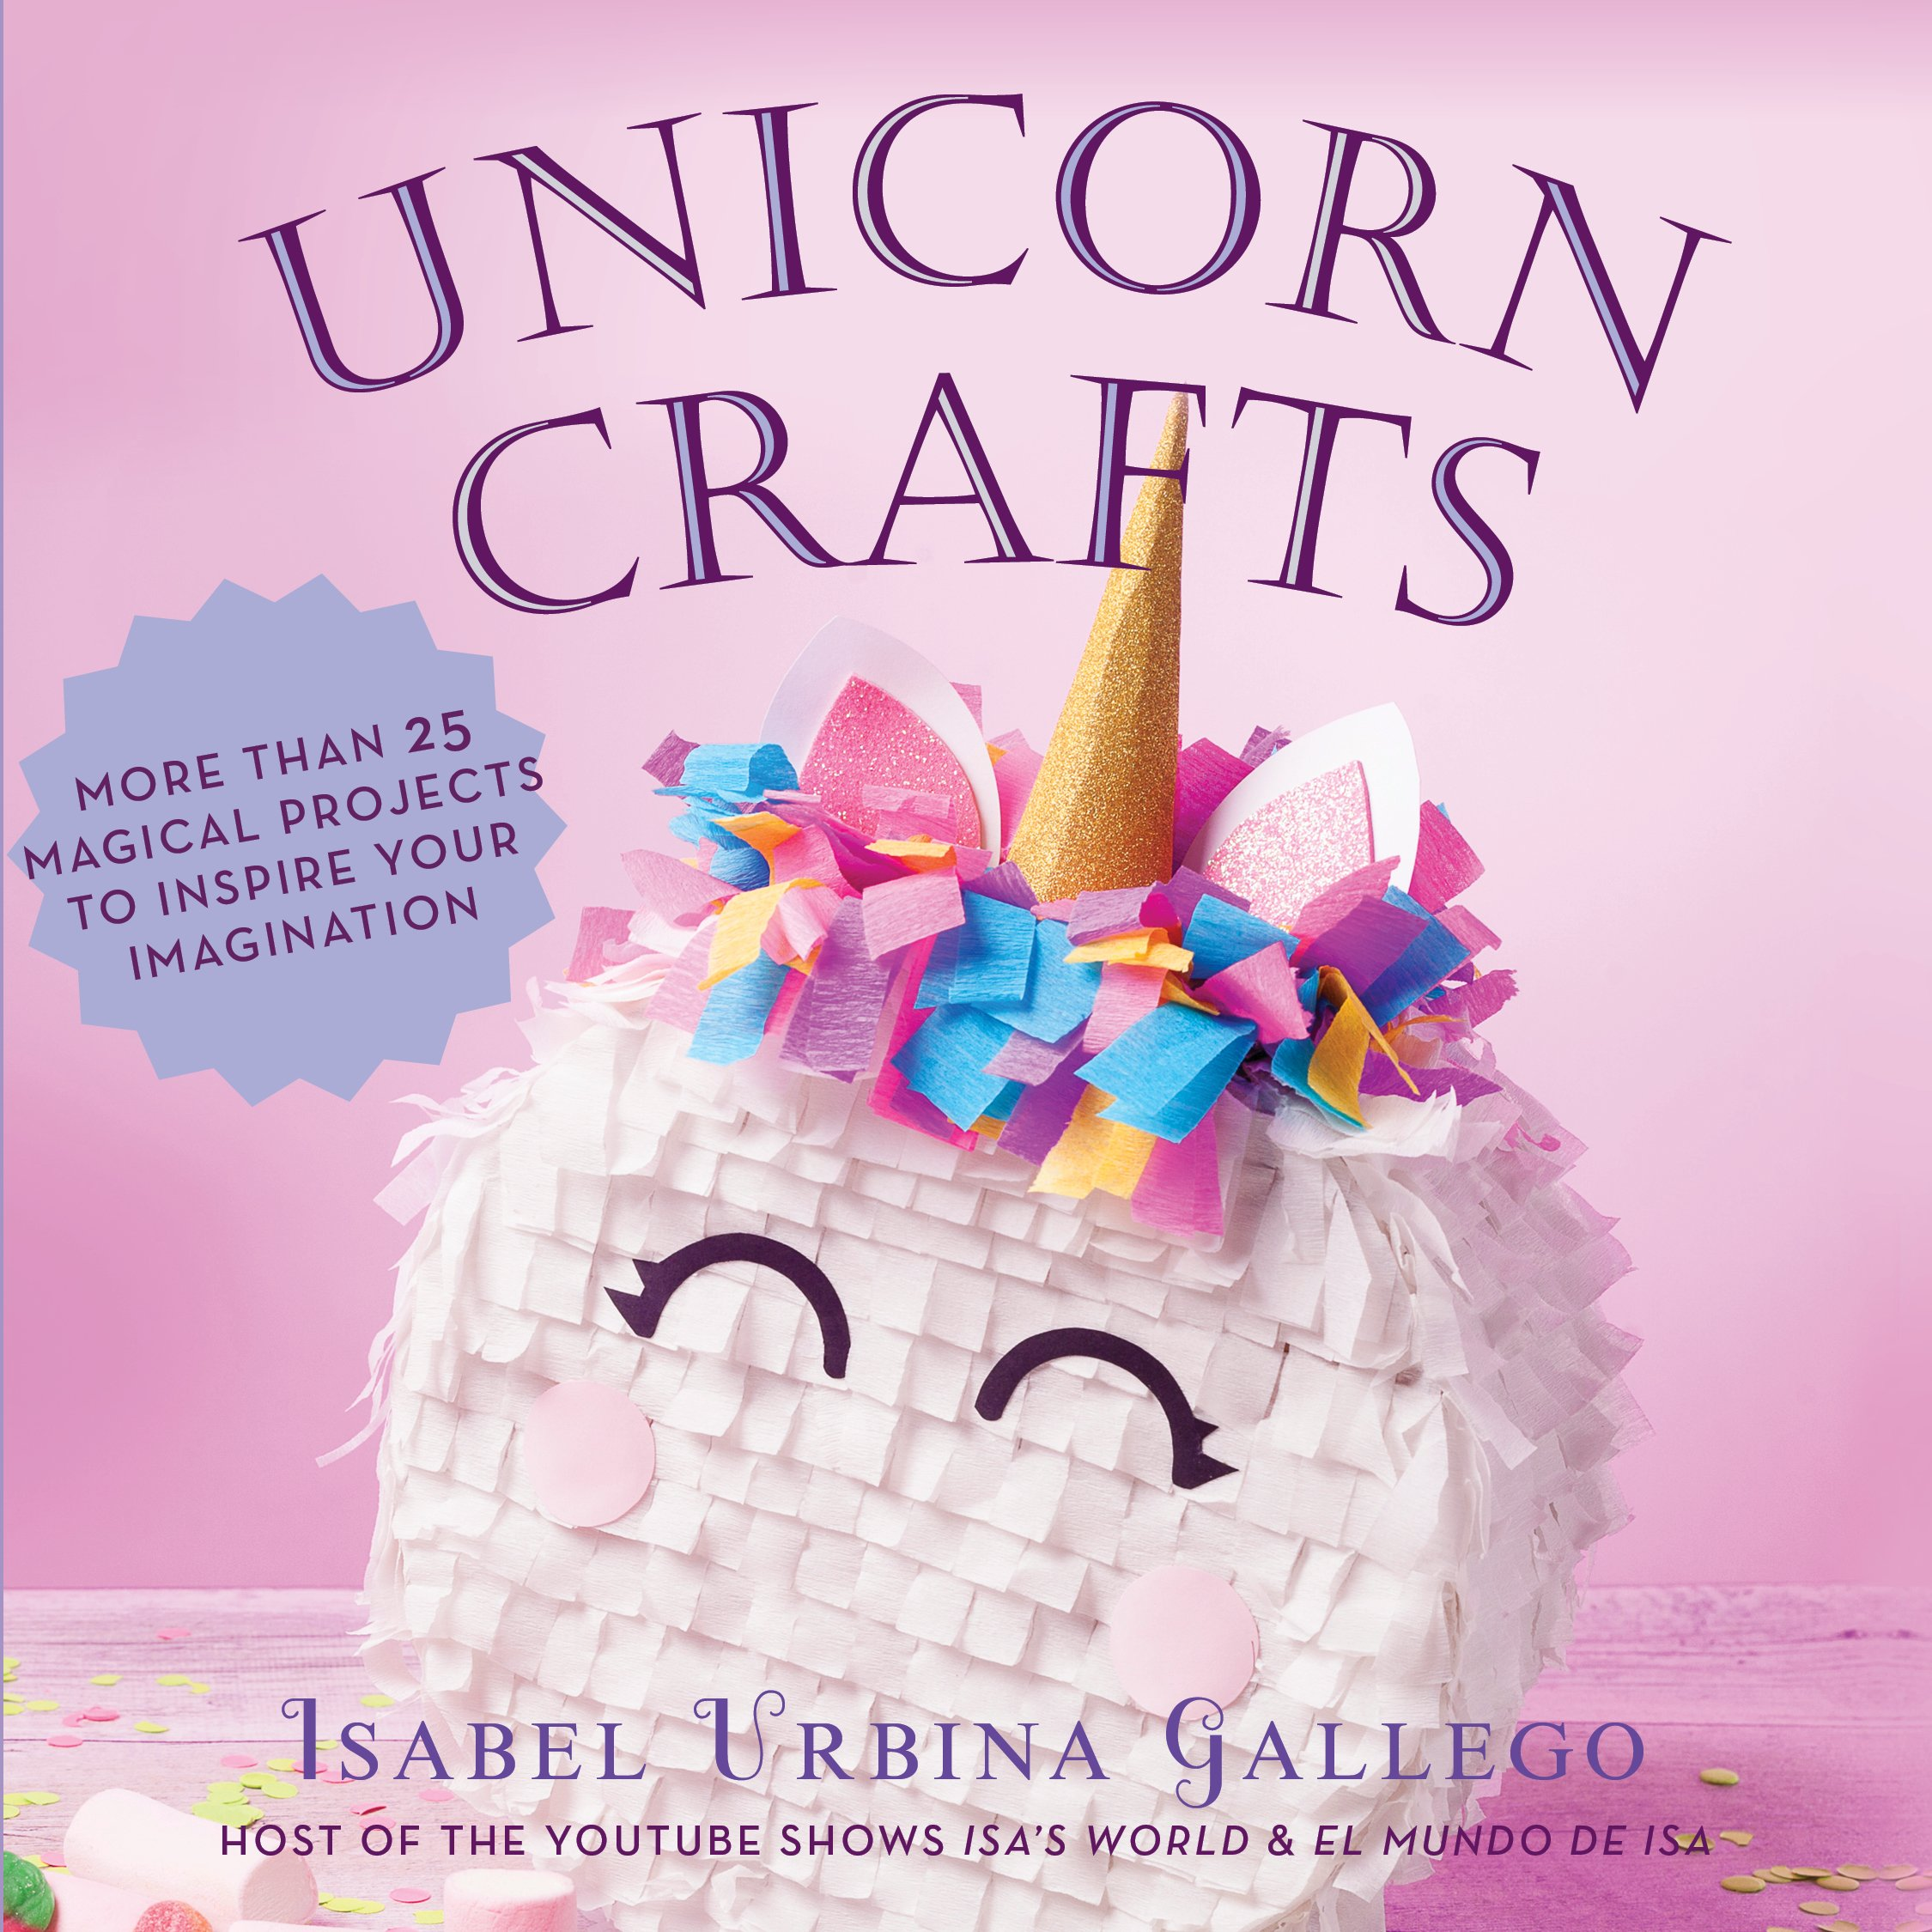 amazon unicorn crafts more than 25 magical projects to inspire